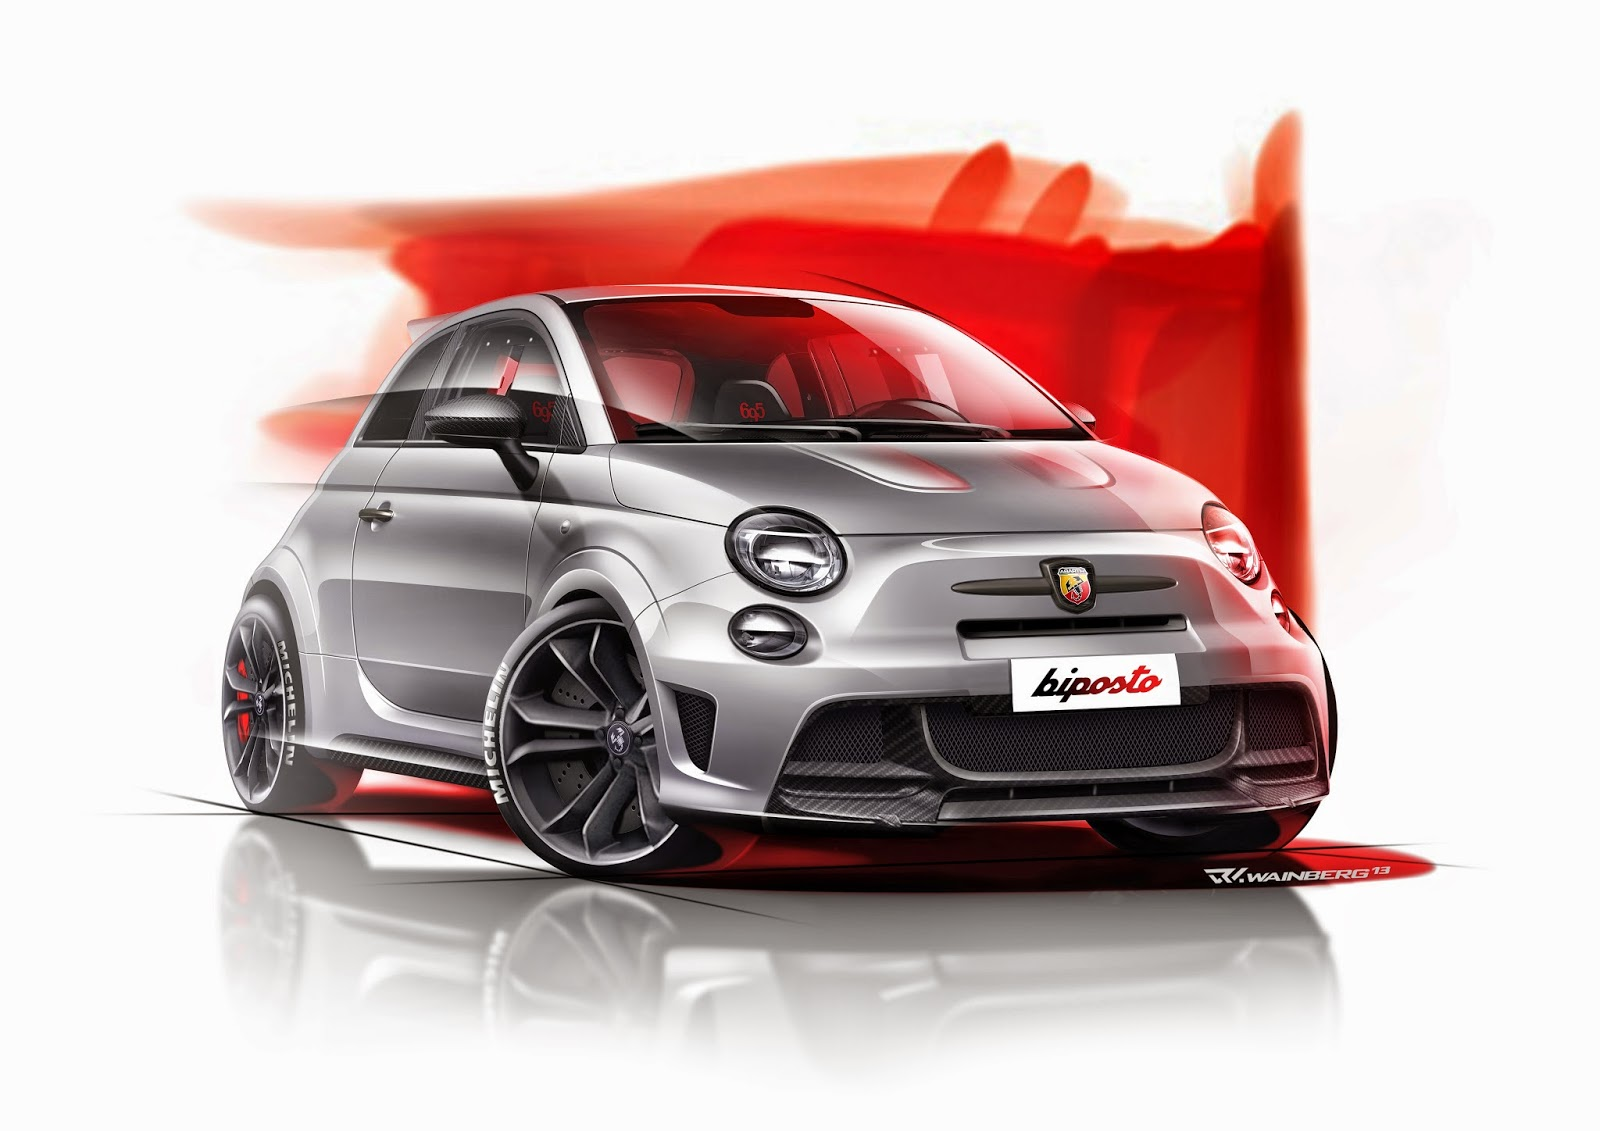 abarth blog black label disegni abarth 695 biposto. Black Bedroom Furniture Sets. Home Design Ideas